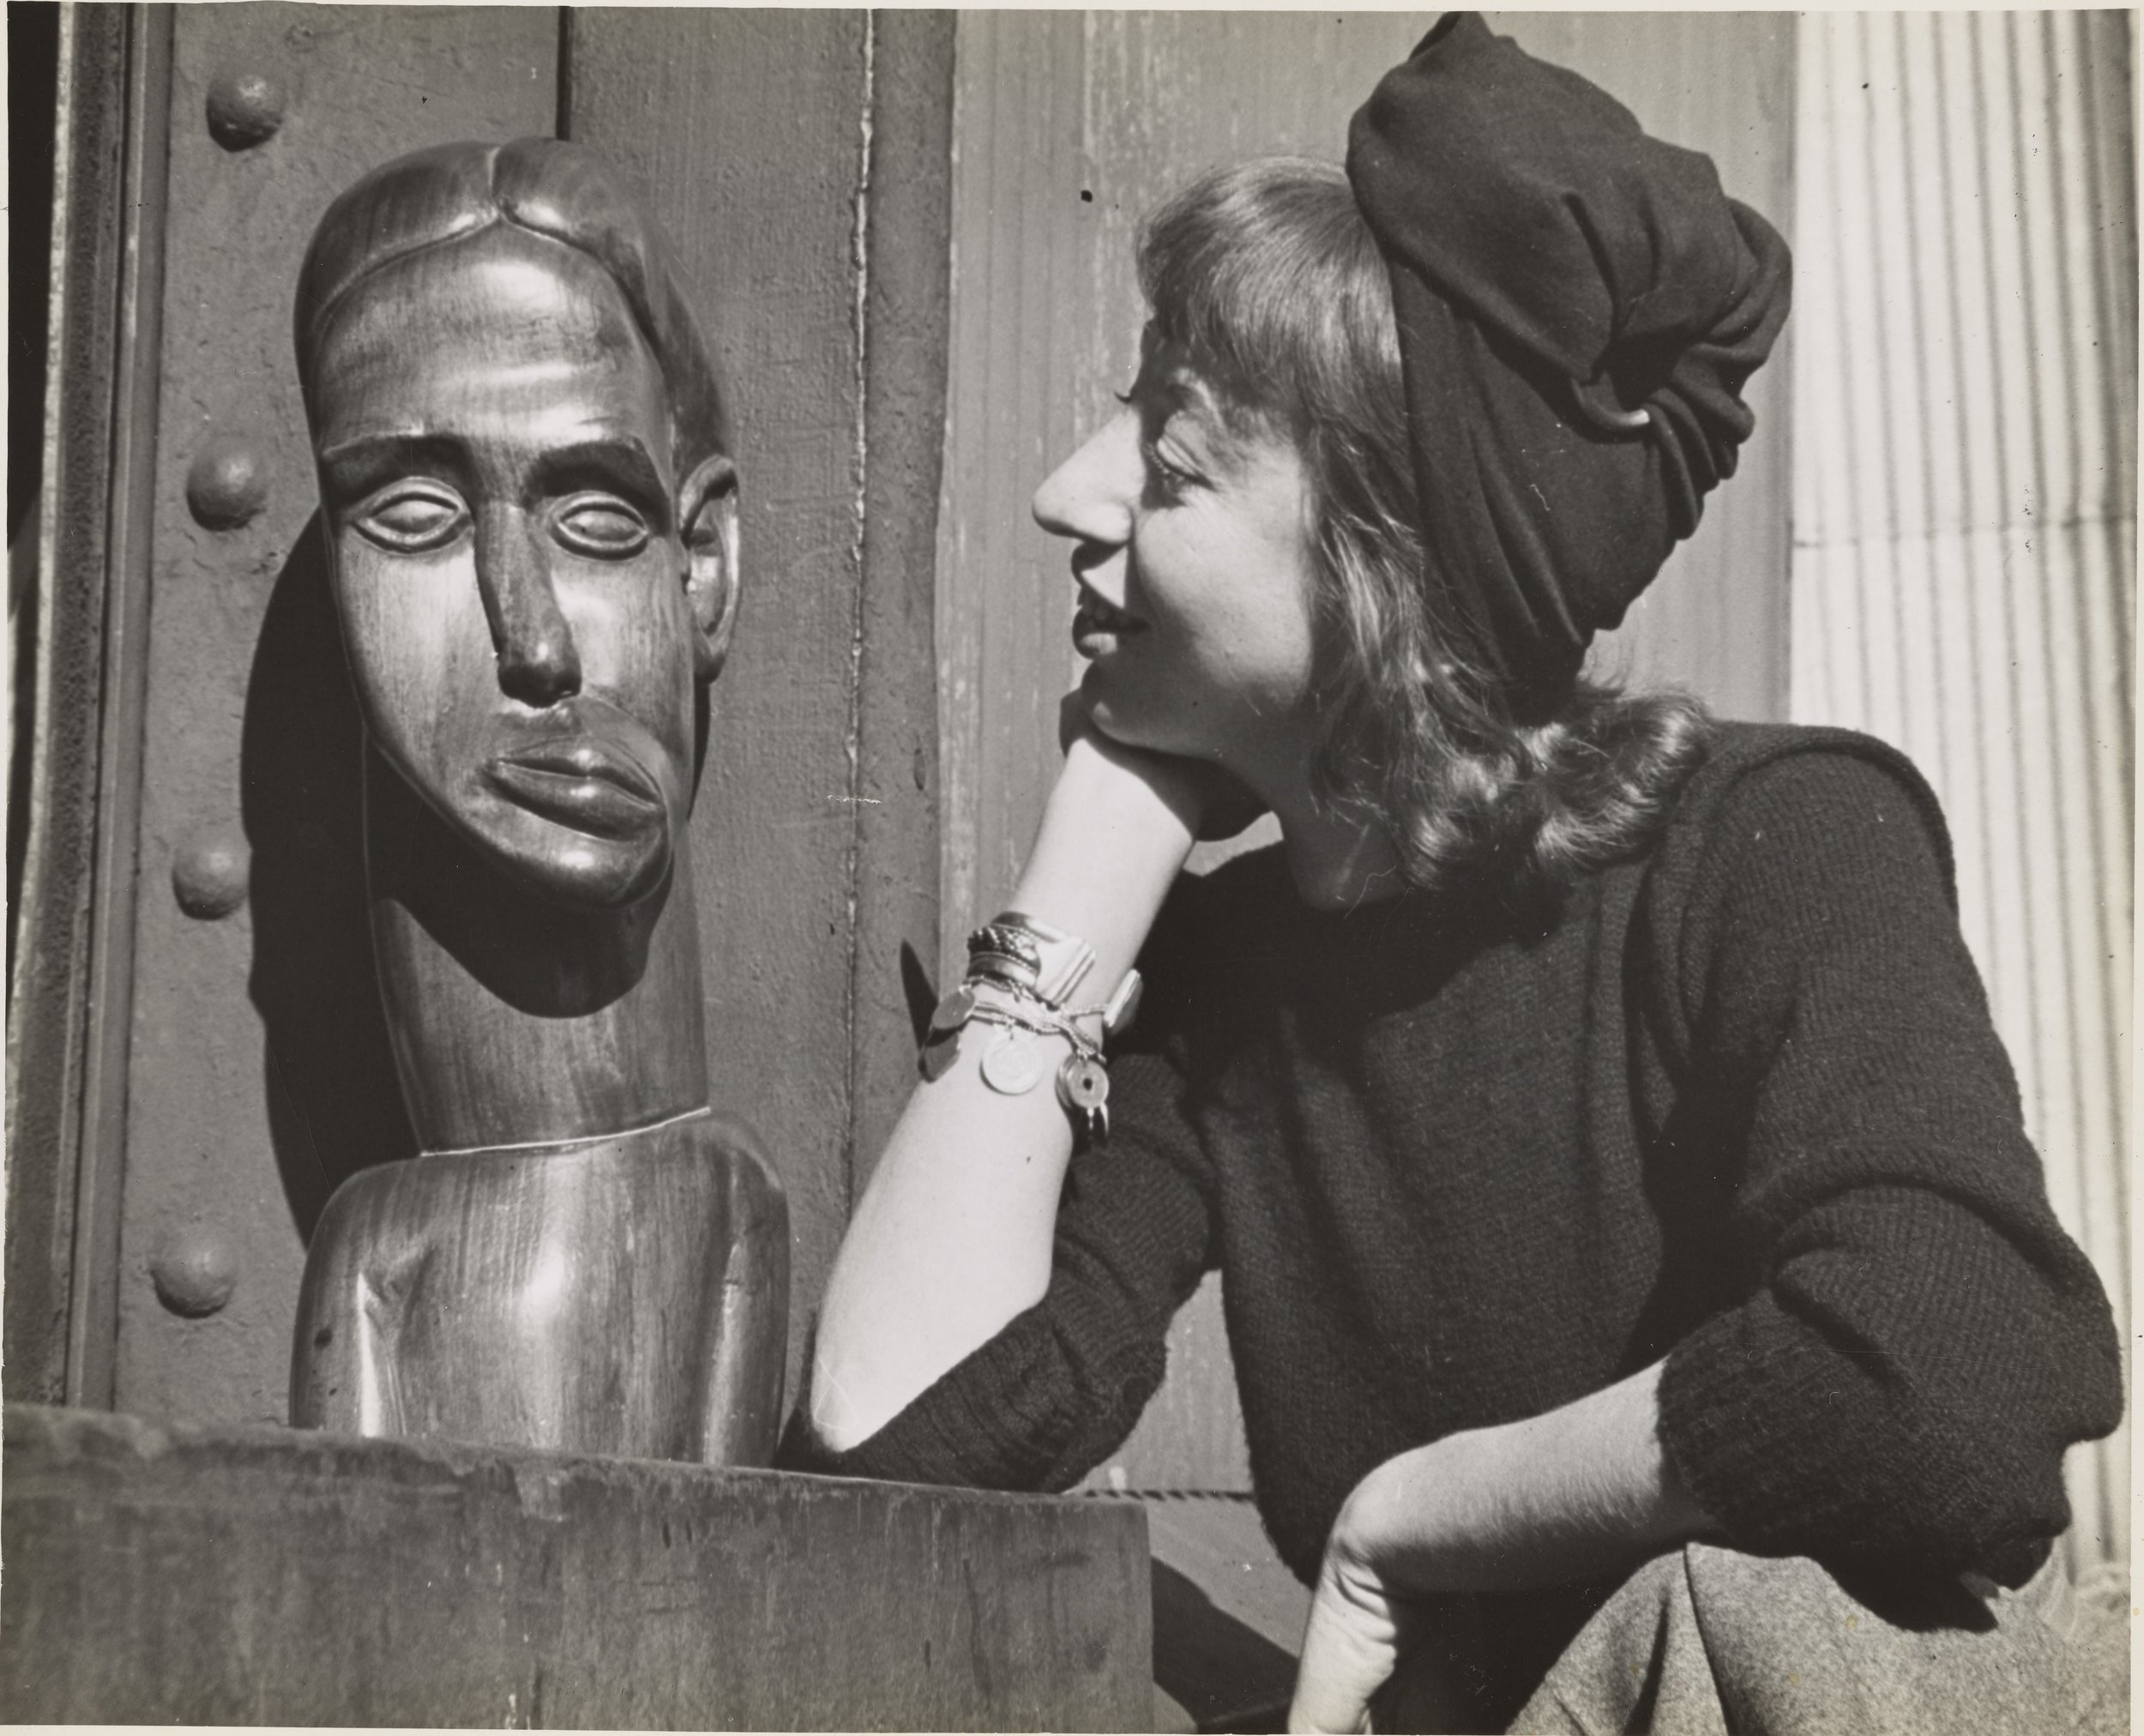 Lee Krasner at the WPA Pier, New York City, where she was working on a WPA commission, c.1940. Photograph by Fred Prater. Lee Krasner Papers, c.1905-1984. Archives of American Art, Smithsonian Institution.